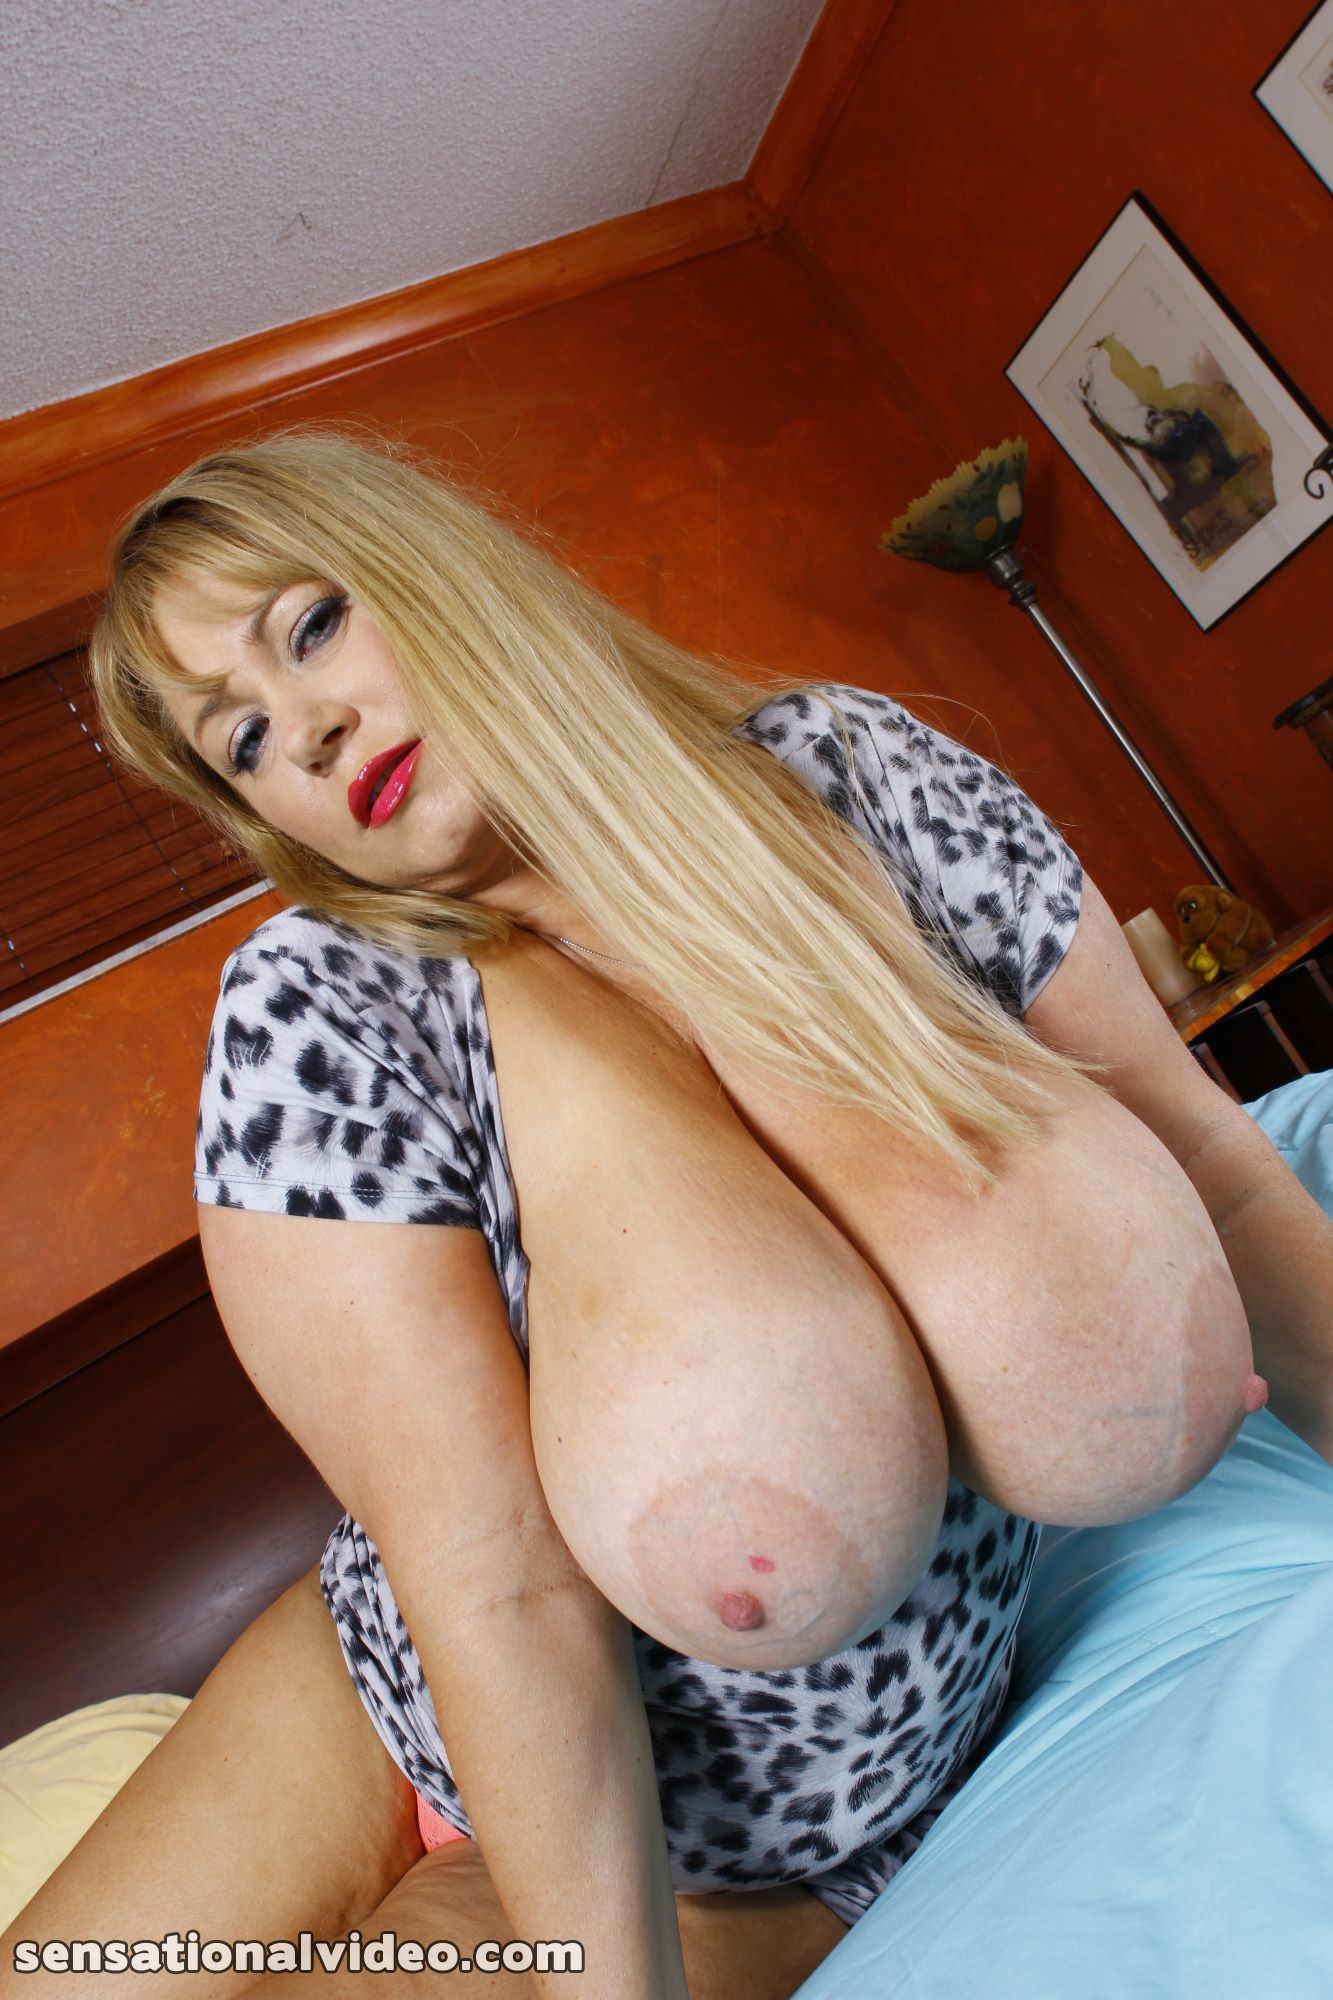 lesgalls spicytitties plumperpass gal538 pic 8